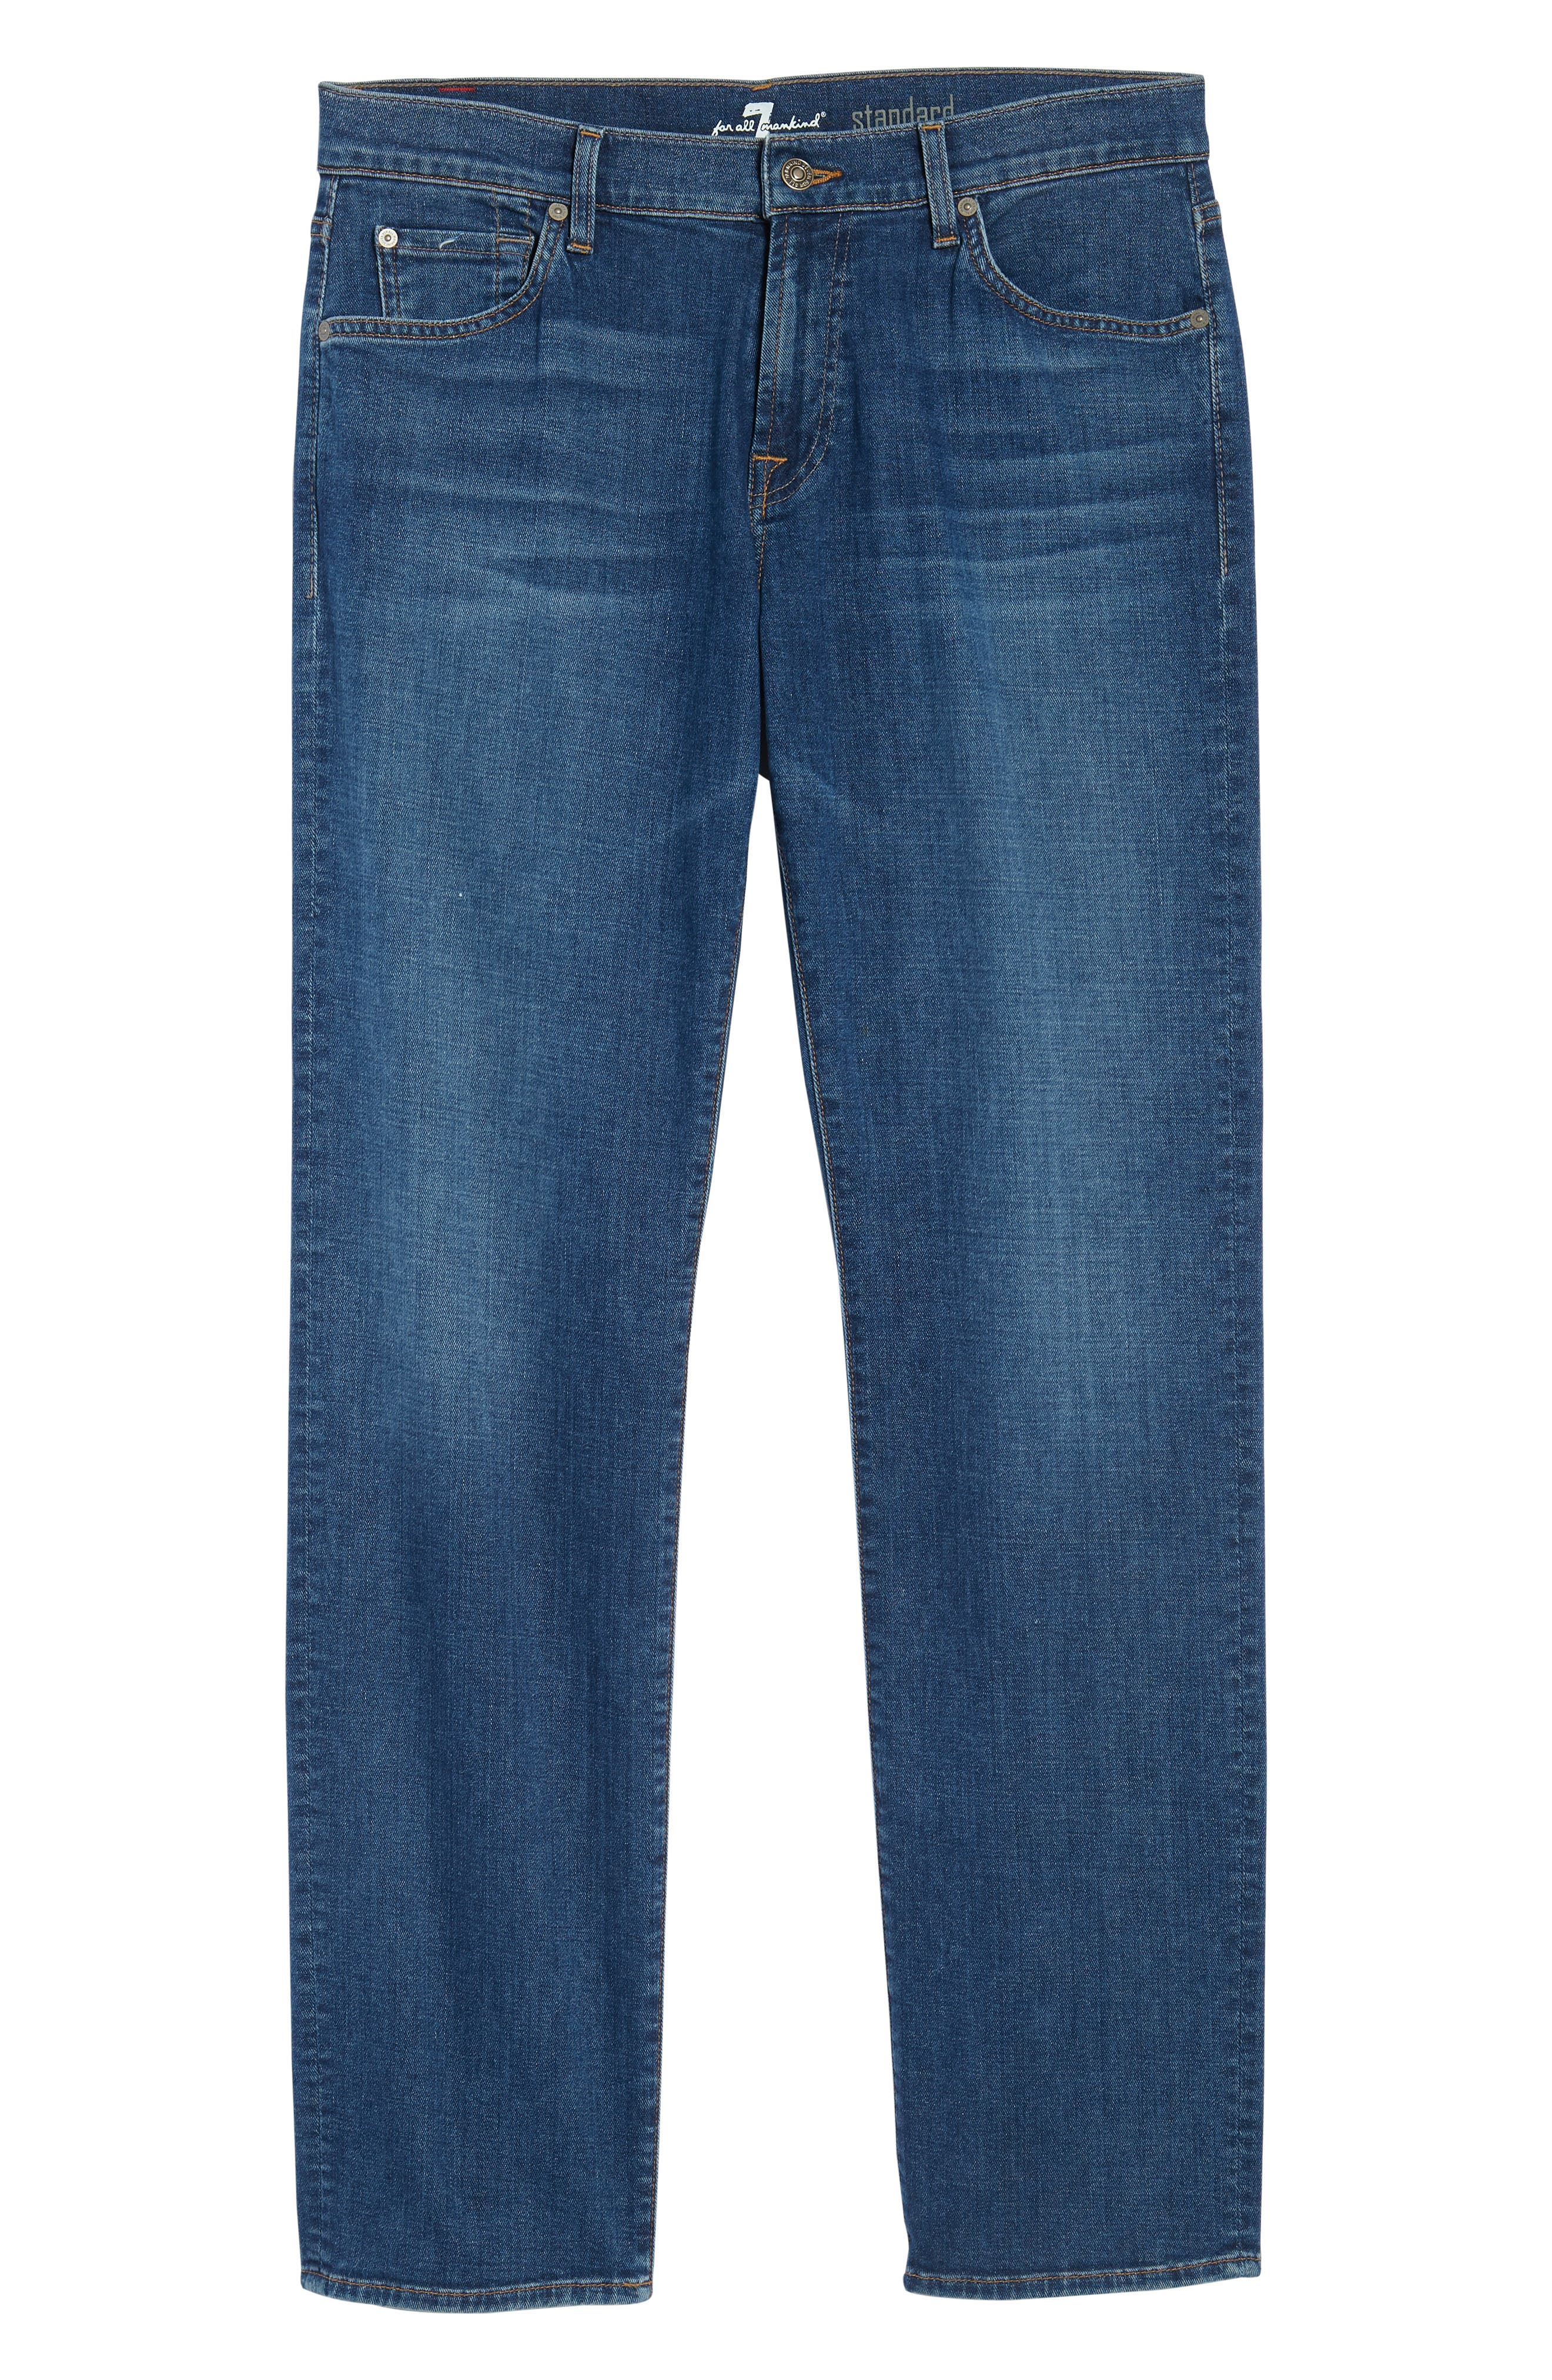 Standard Straight Leg Jeans,                             Alternate thumbnail 6, color,                             Oasis